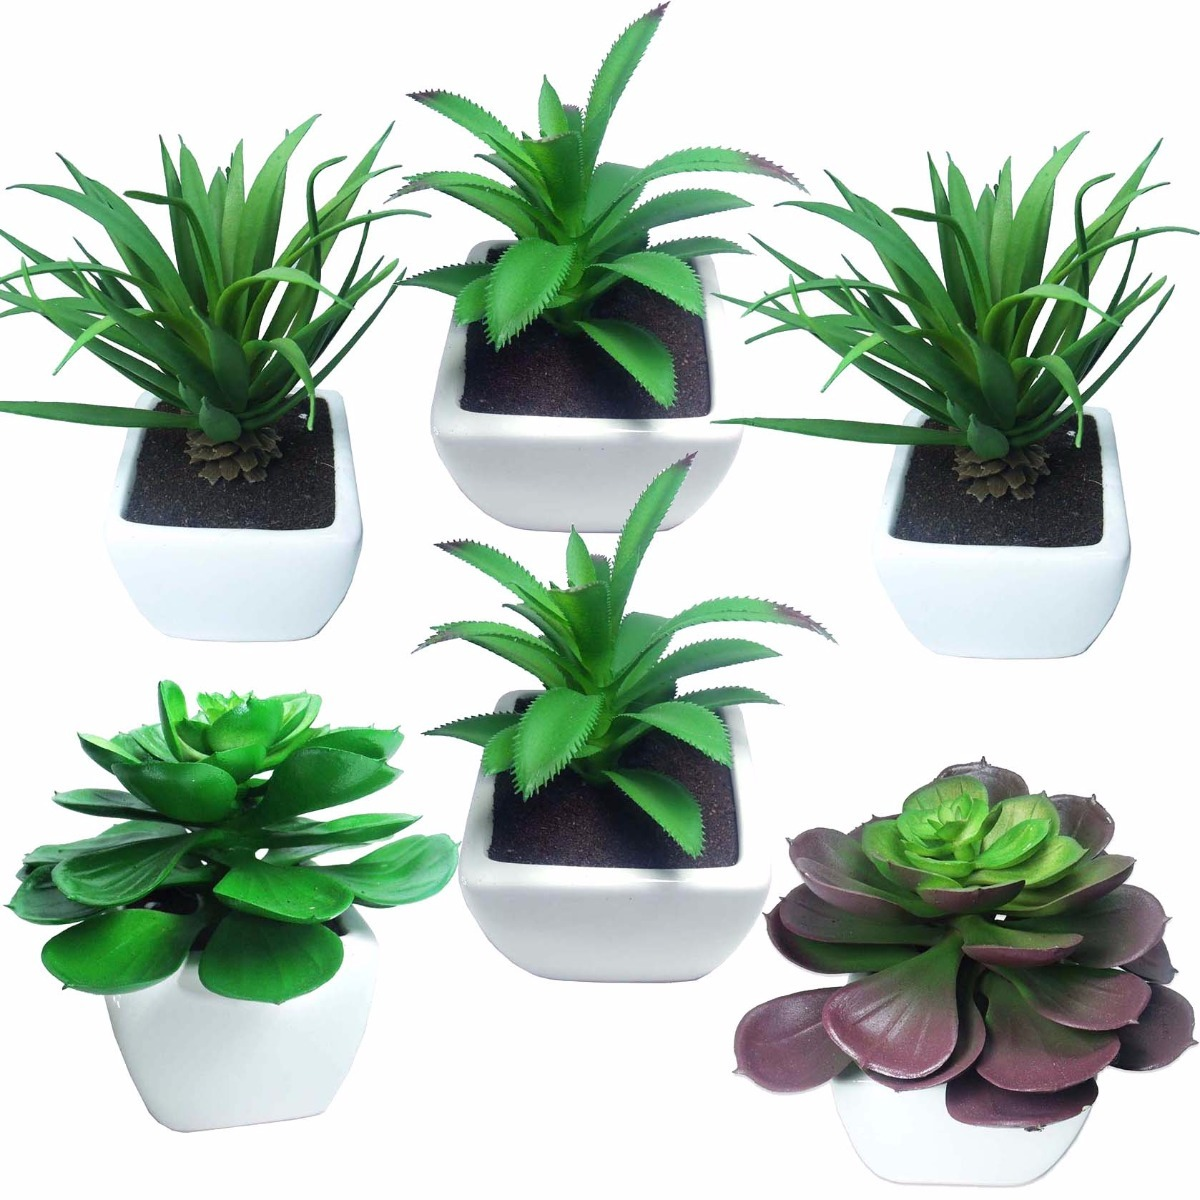 Mini Suculenta Plantas Artificiais Decorativas Com 6 Unid